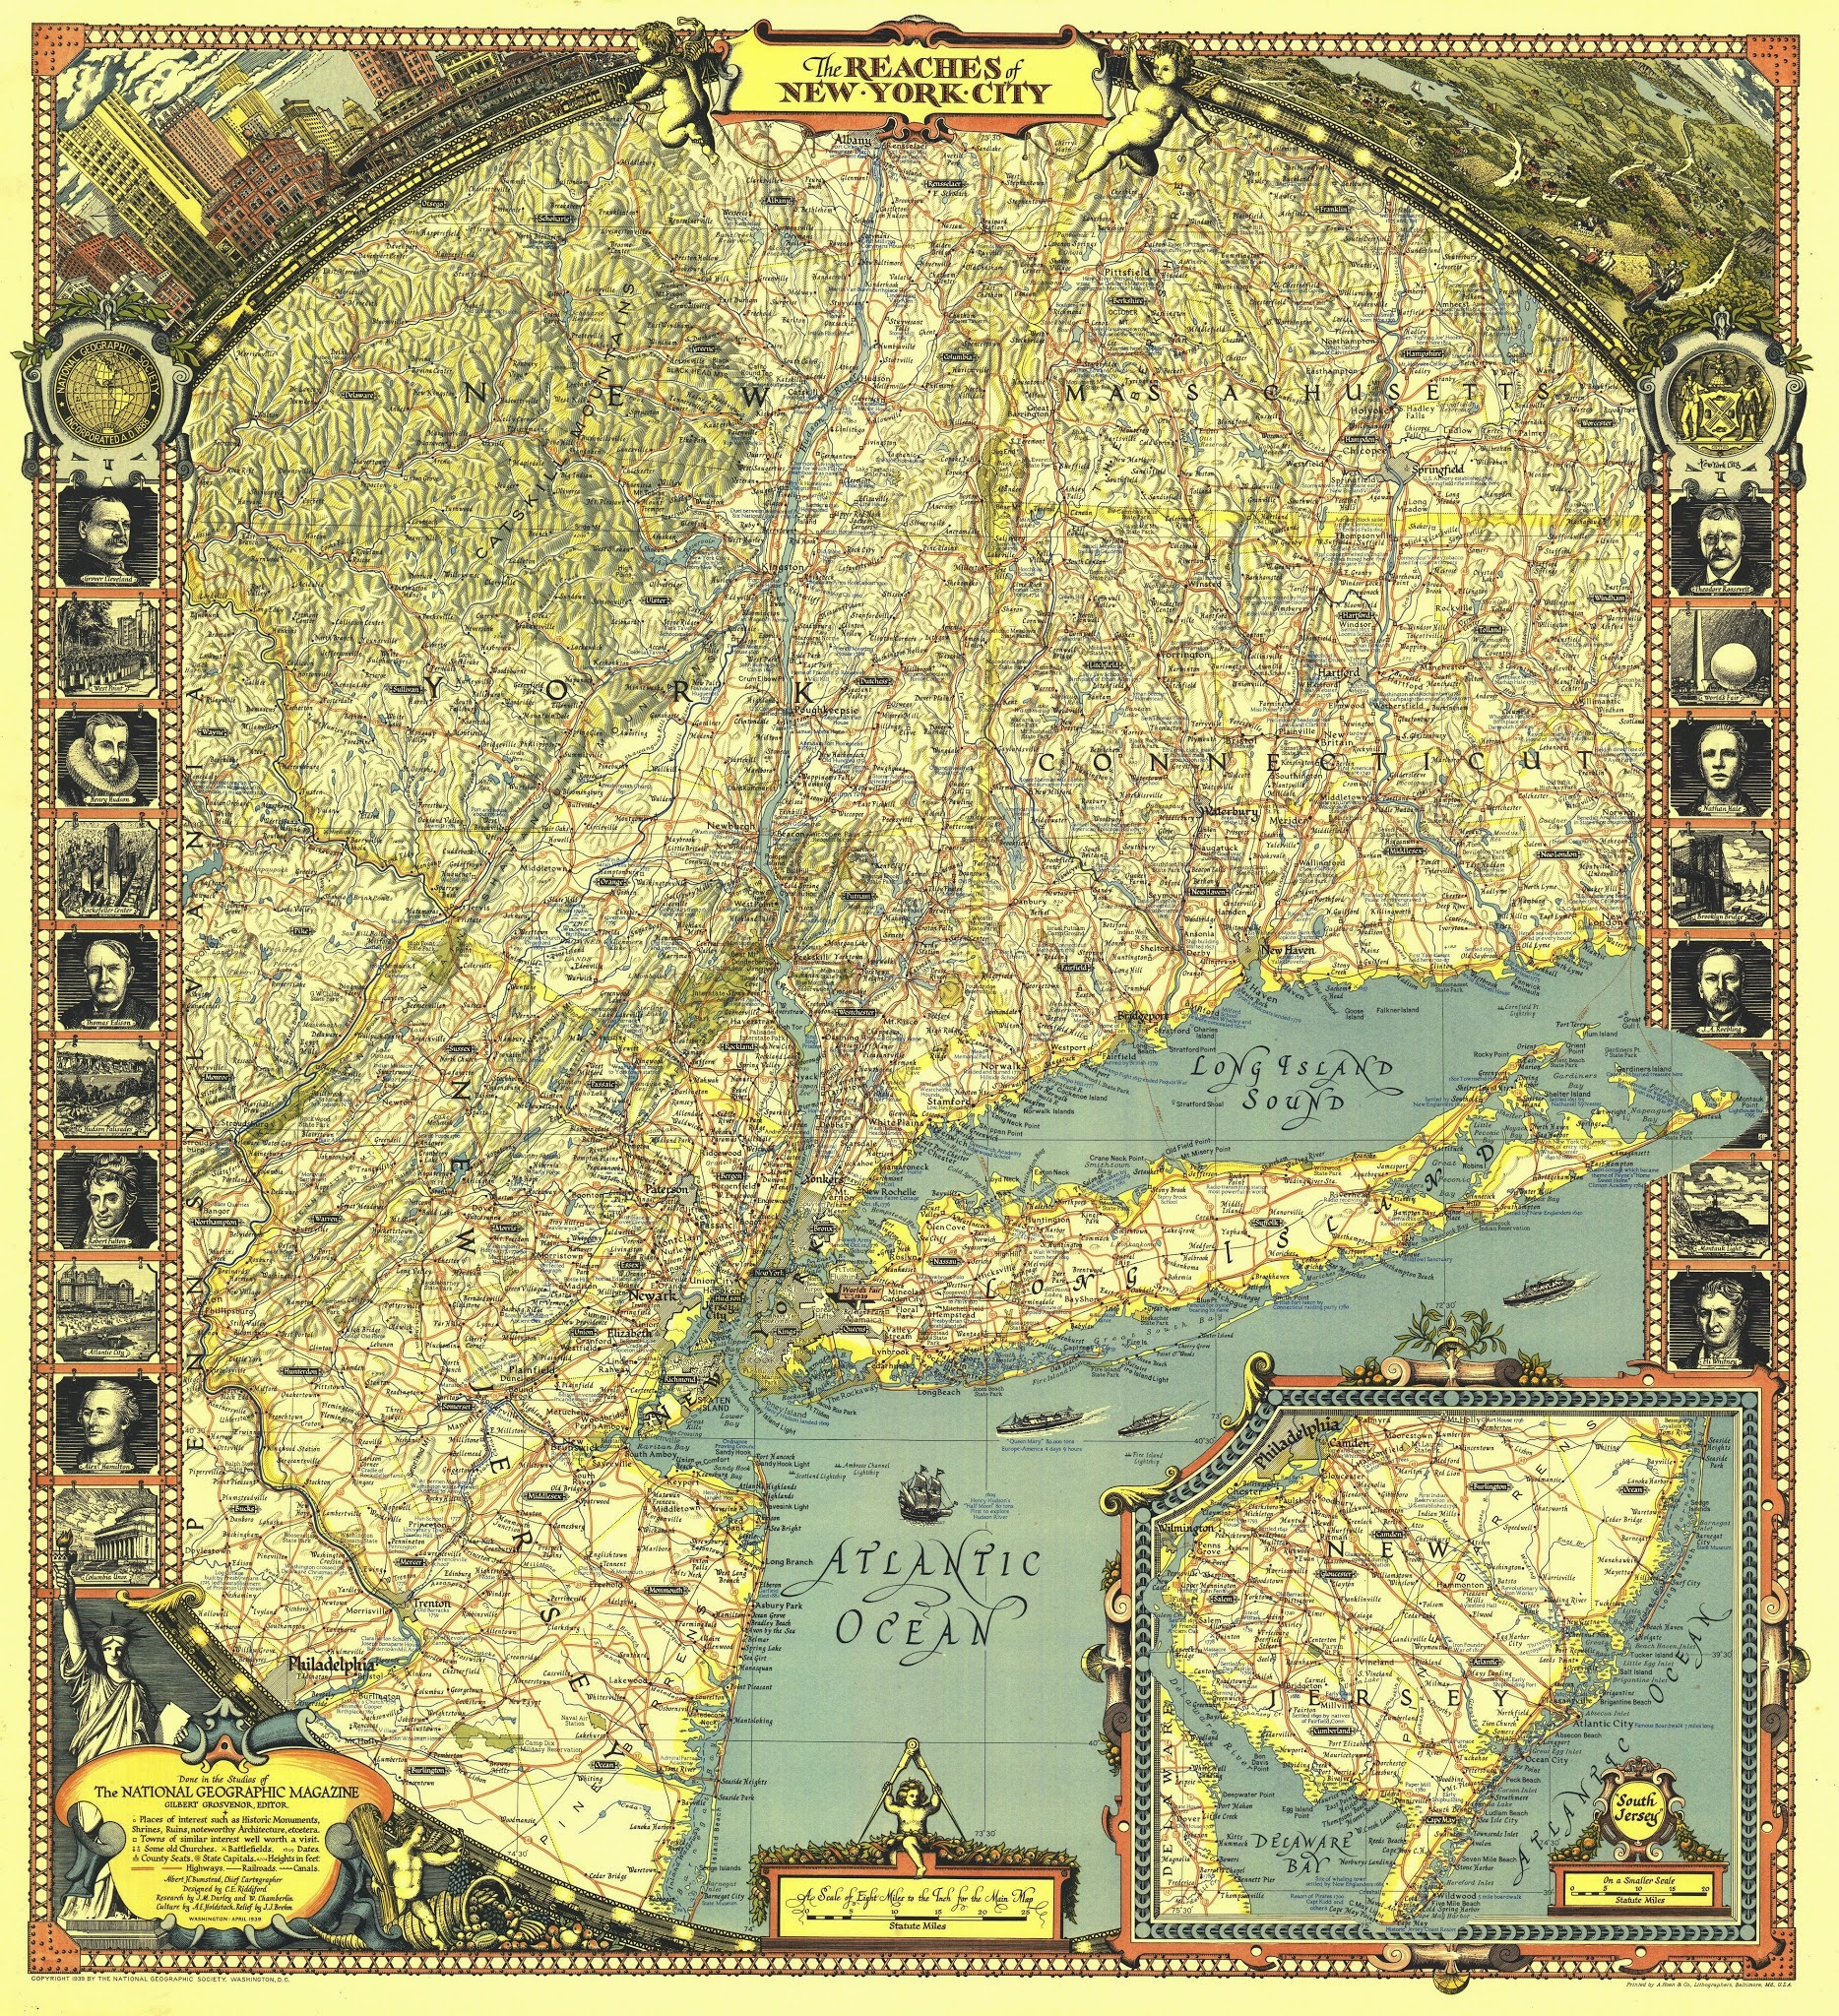 Vintage infographic Reaches of New York City (1939) | National Geographic